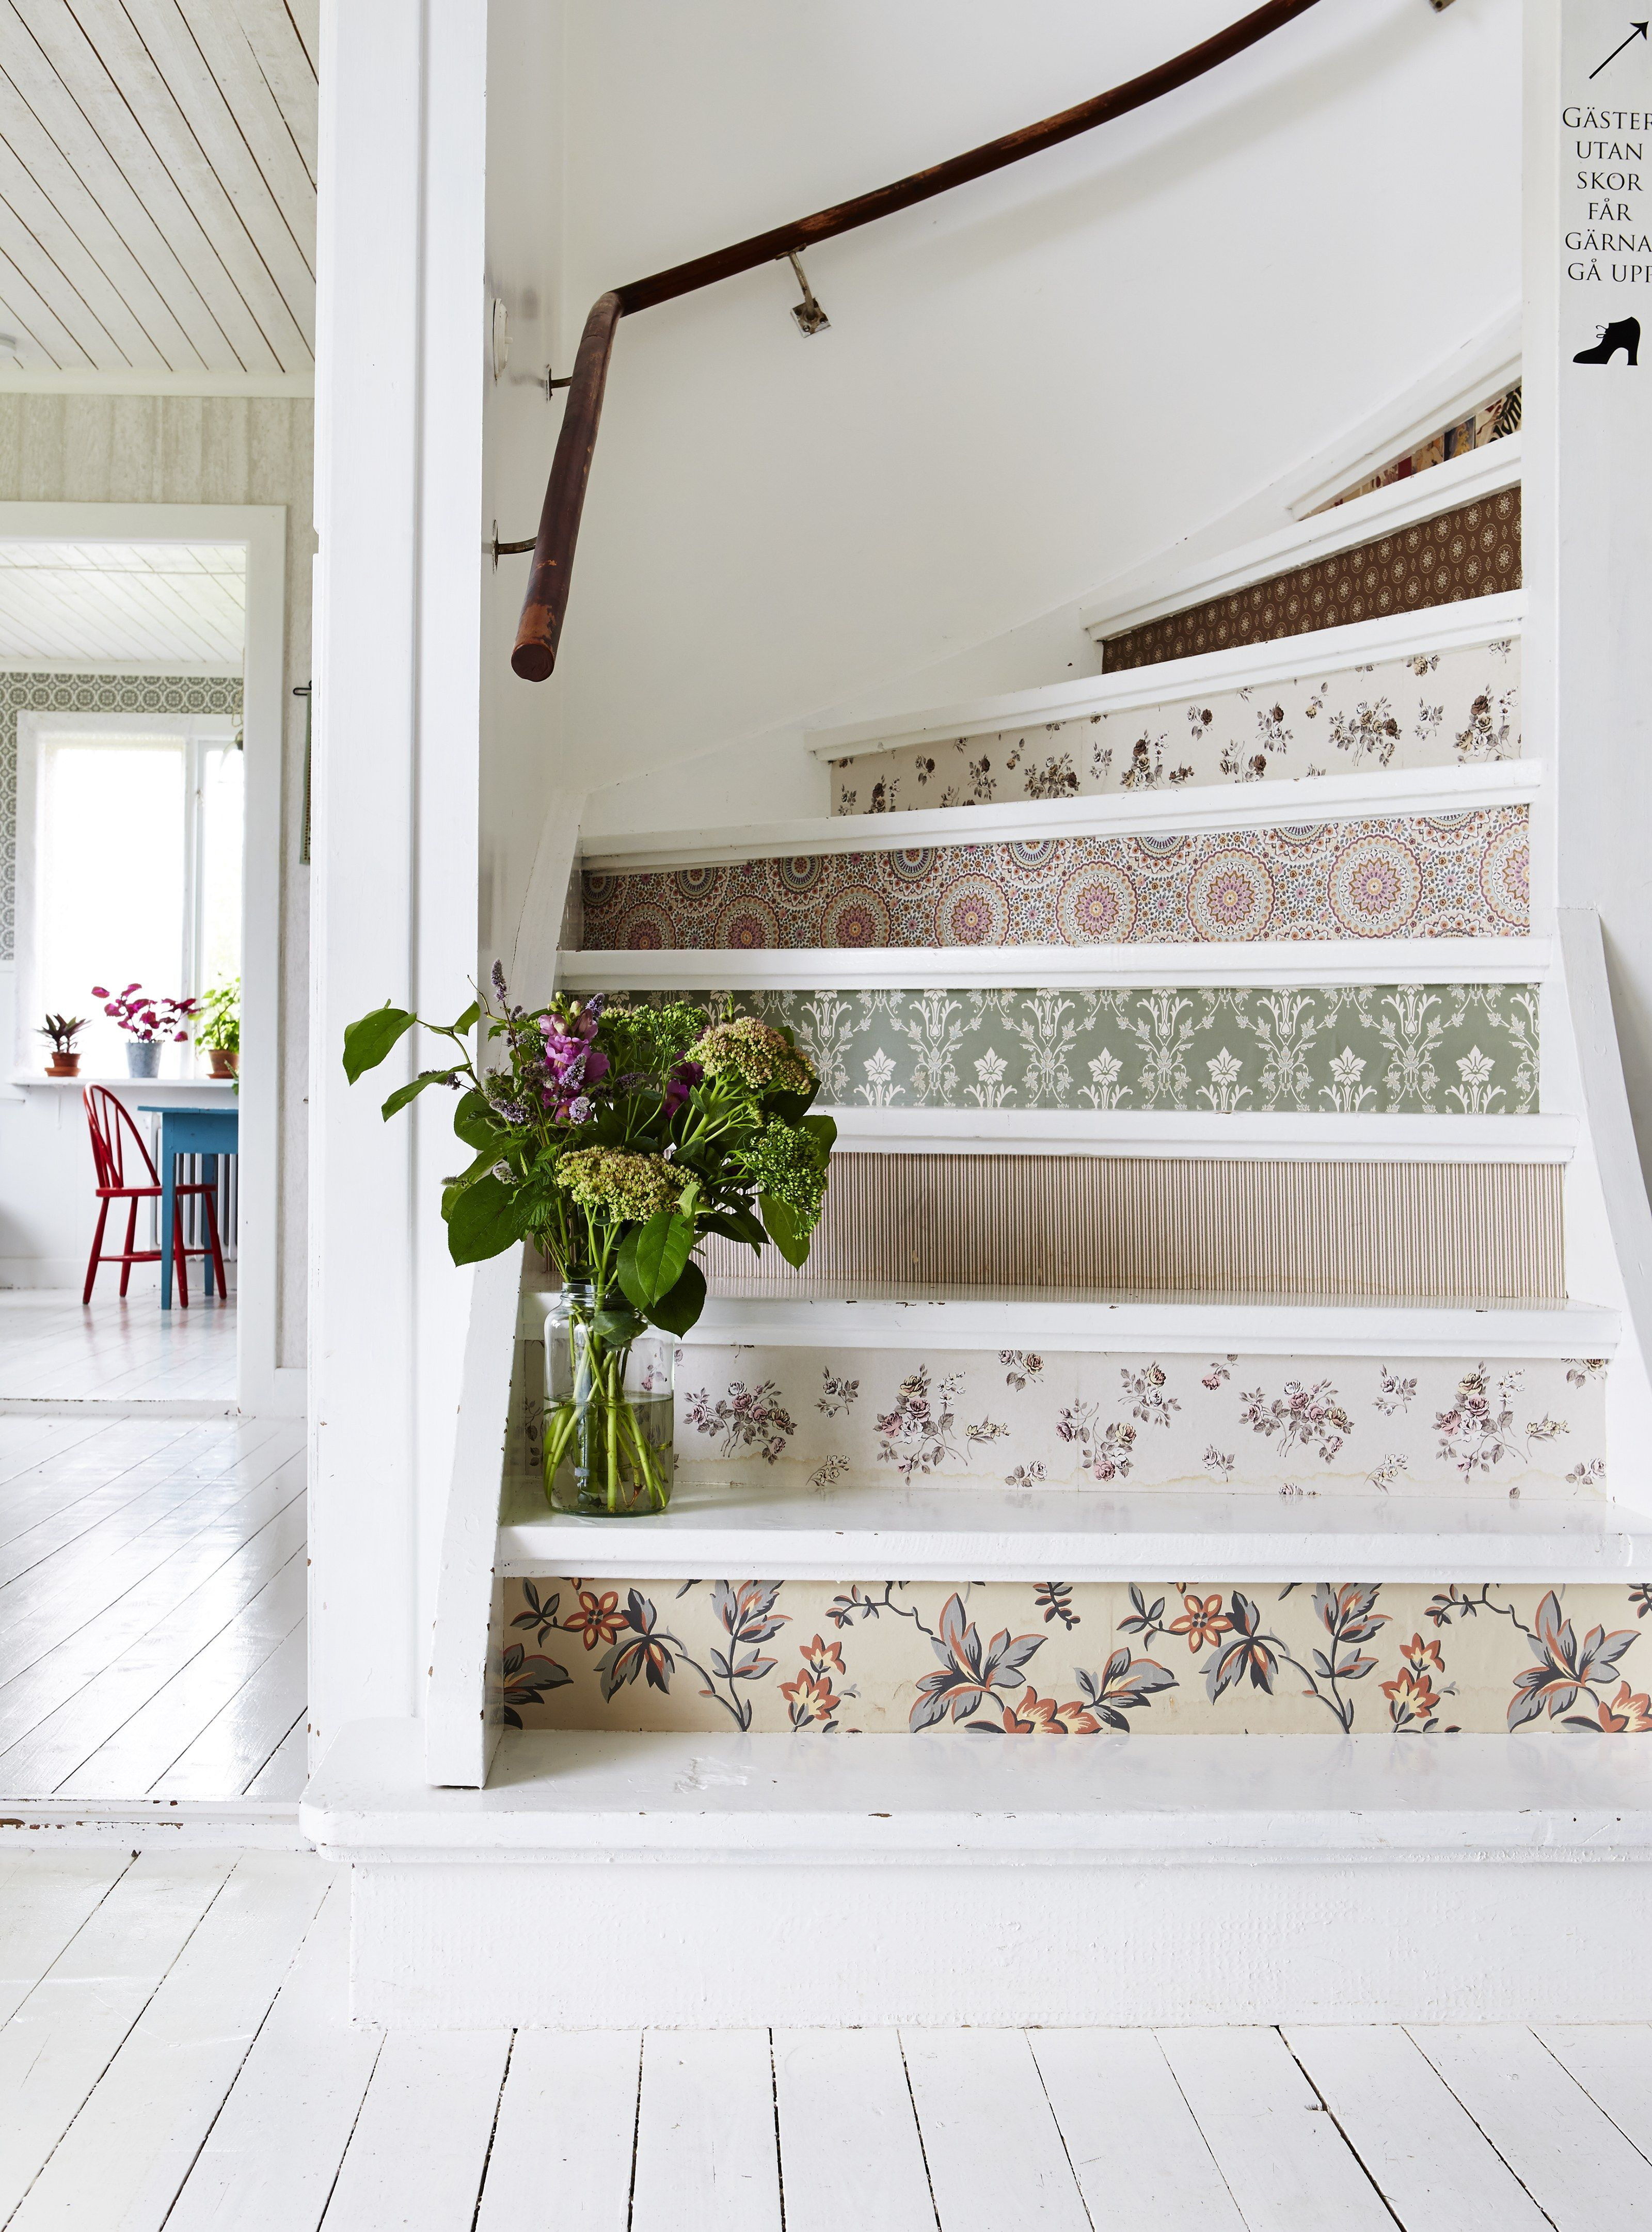 Floral inspired patterns can pop up in unexpected places such as stair risers